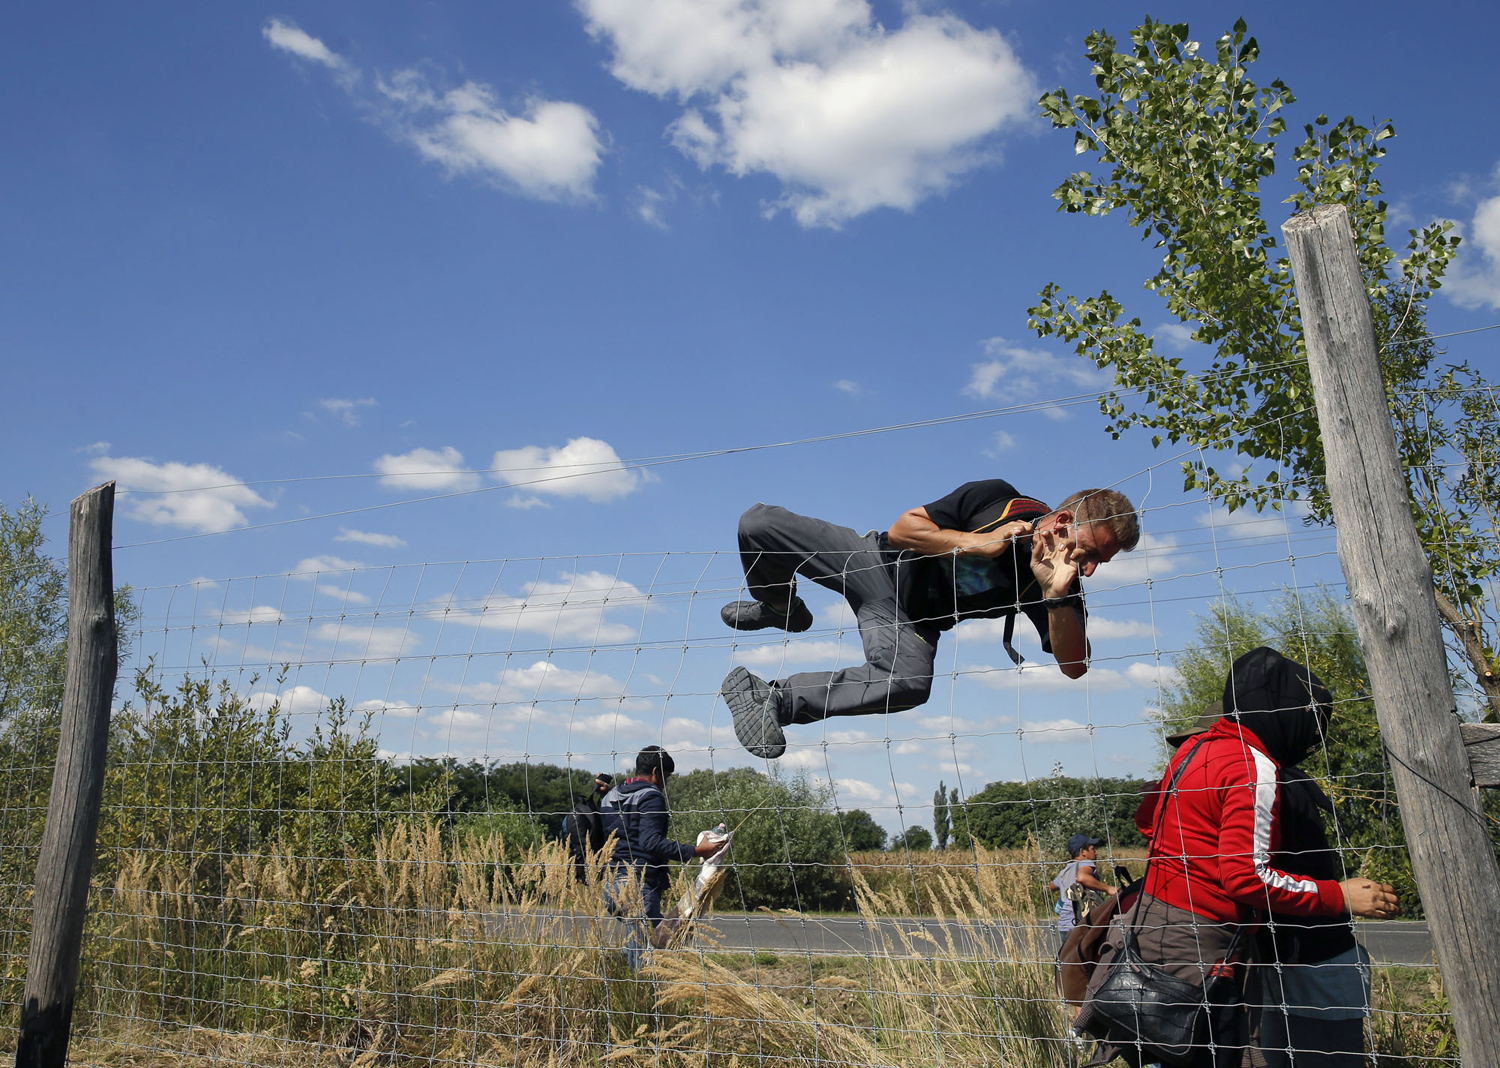 The path of migrants in Europe 12